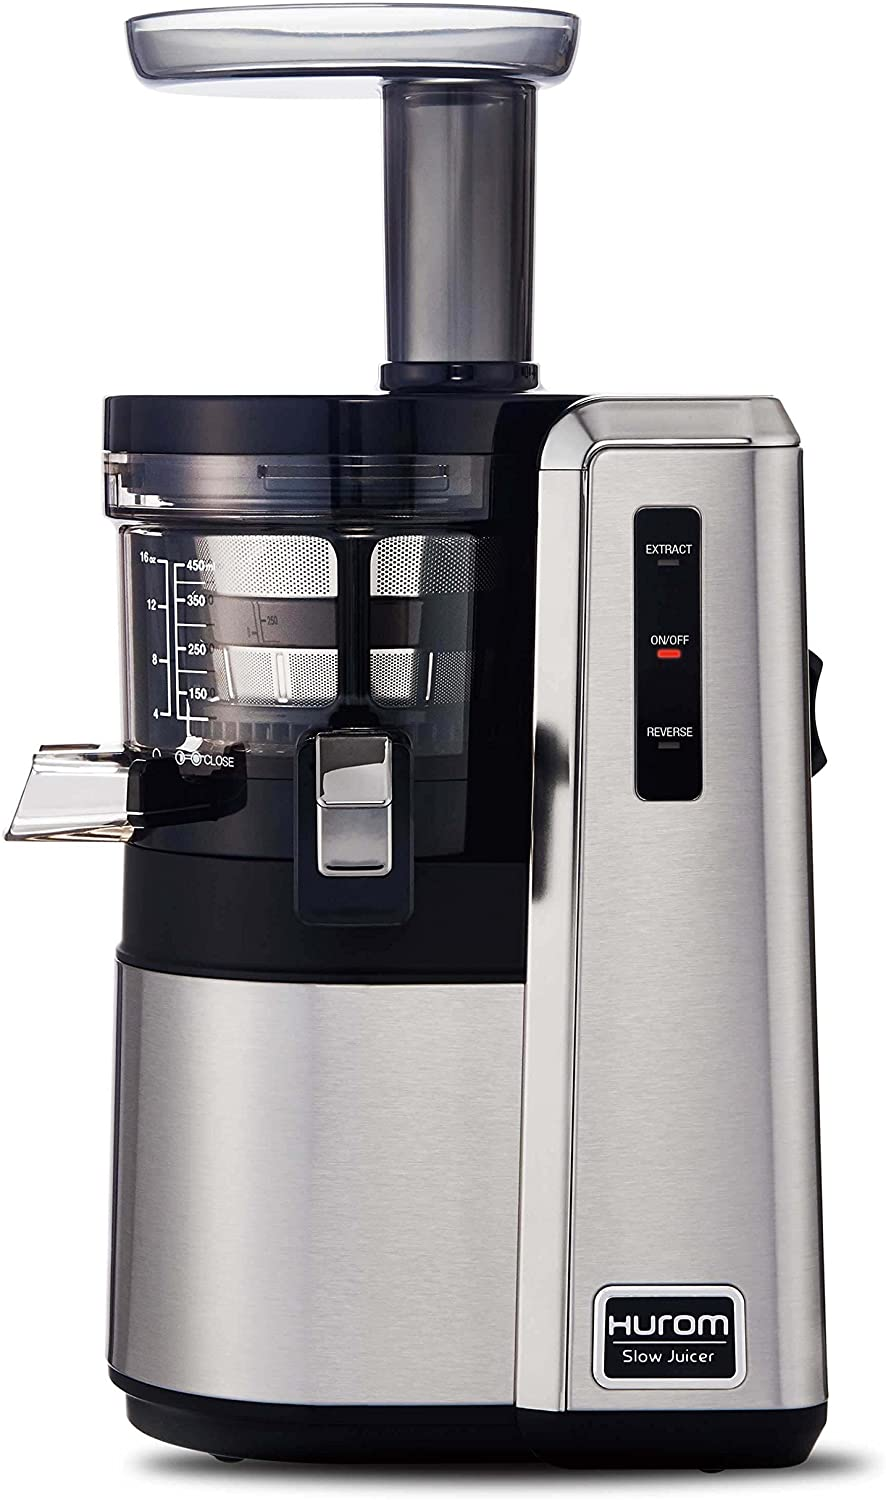 HUROM HZ Slow Juicer, Silver (Renewed)